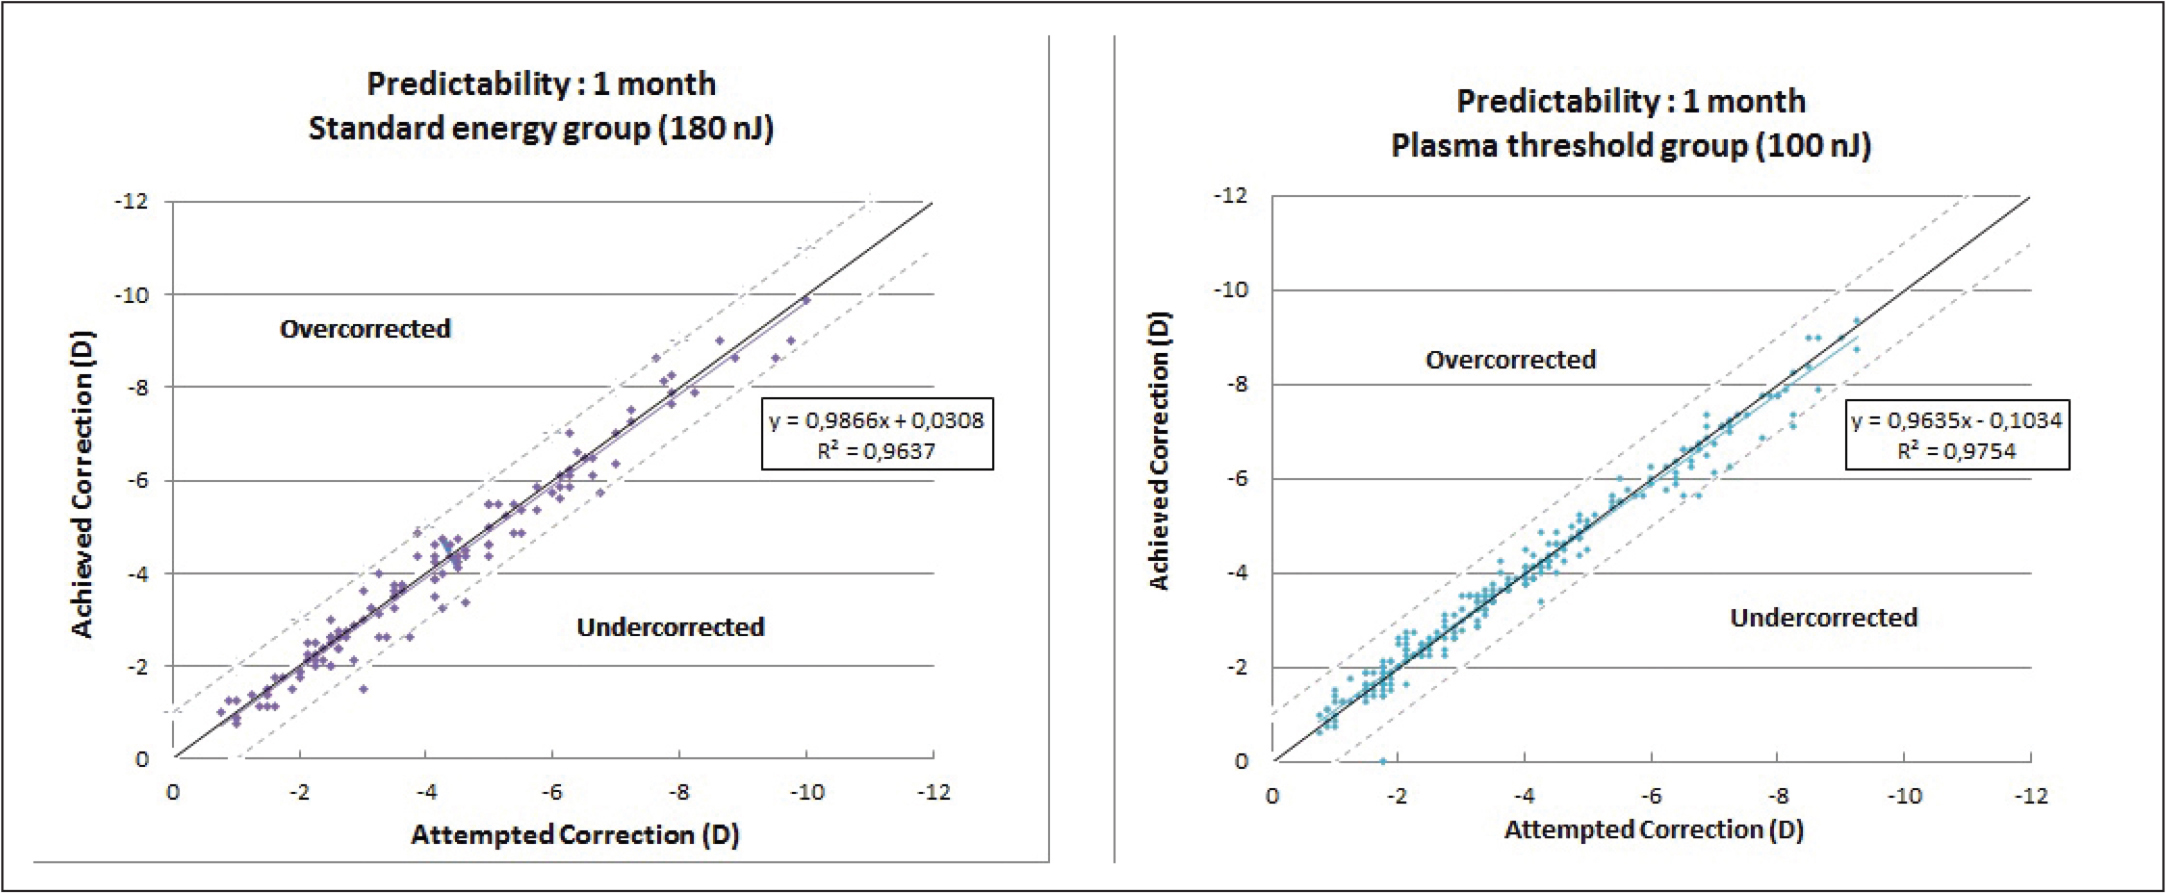 Scatterplot showing the relationship among attempted and achieved spherical equivalent at 1 month after surgery in the standard energy (180 nJ) and plasma threshold (100 nJ) groups. The adjusting line to all points obtained by means of least square method is shown with its corresponding R2 value. D = diopters